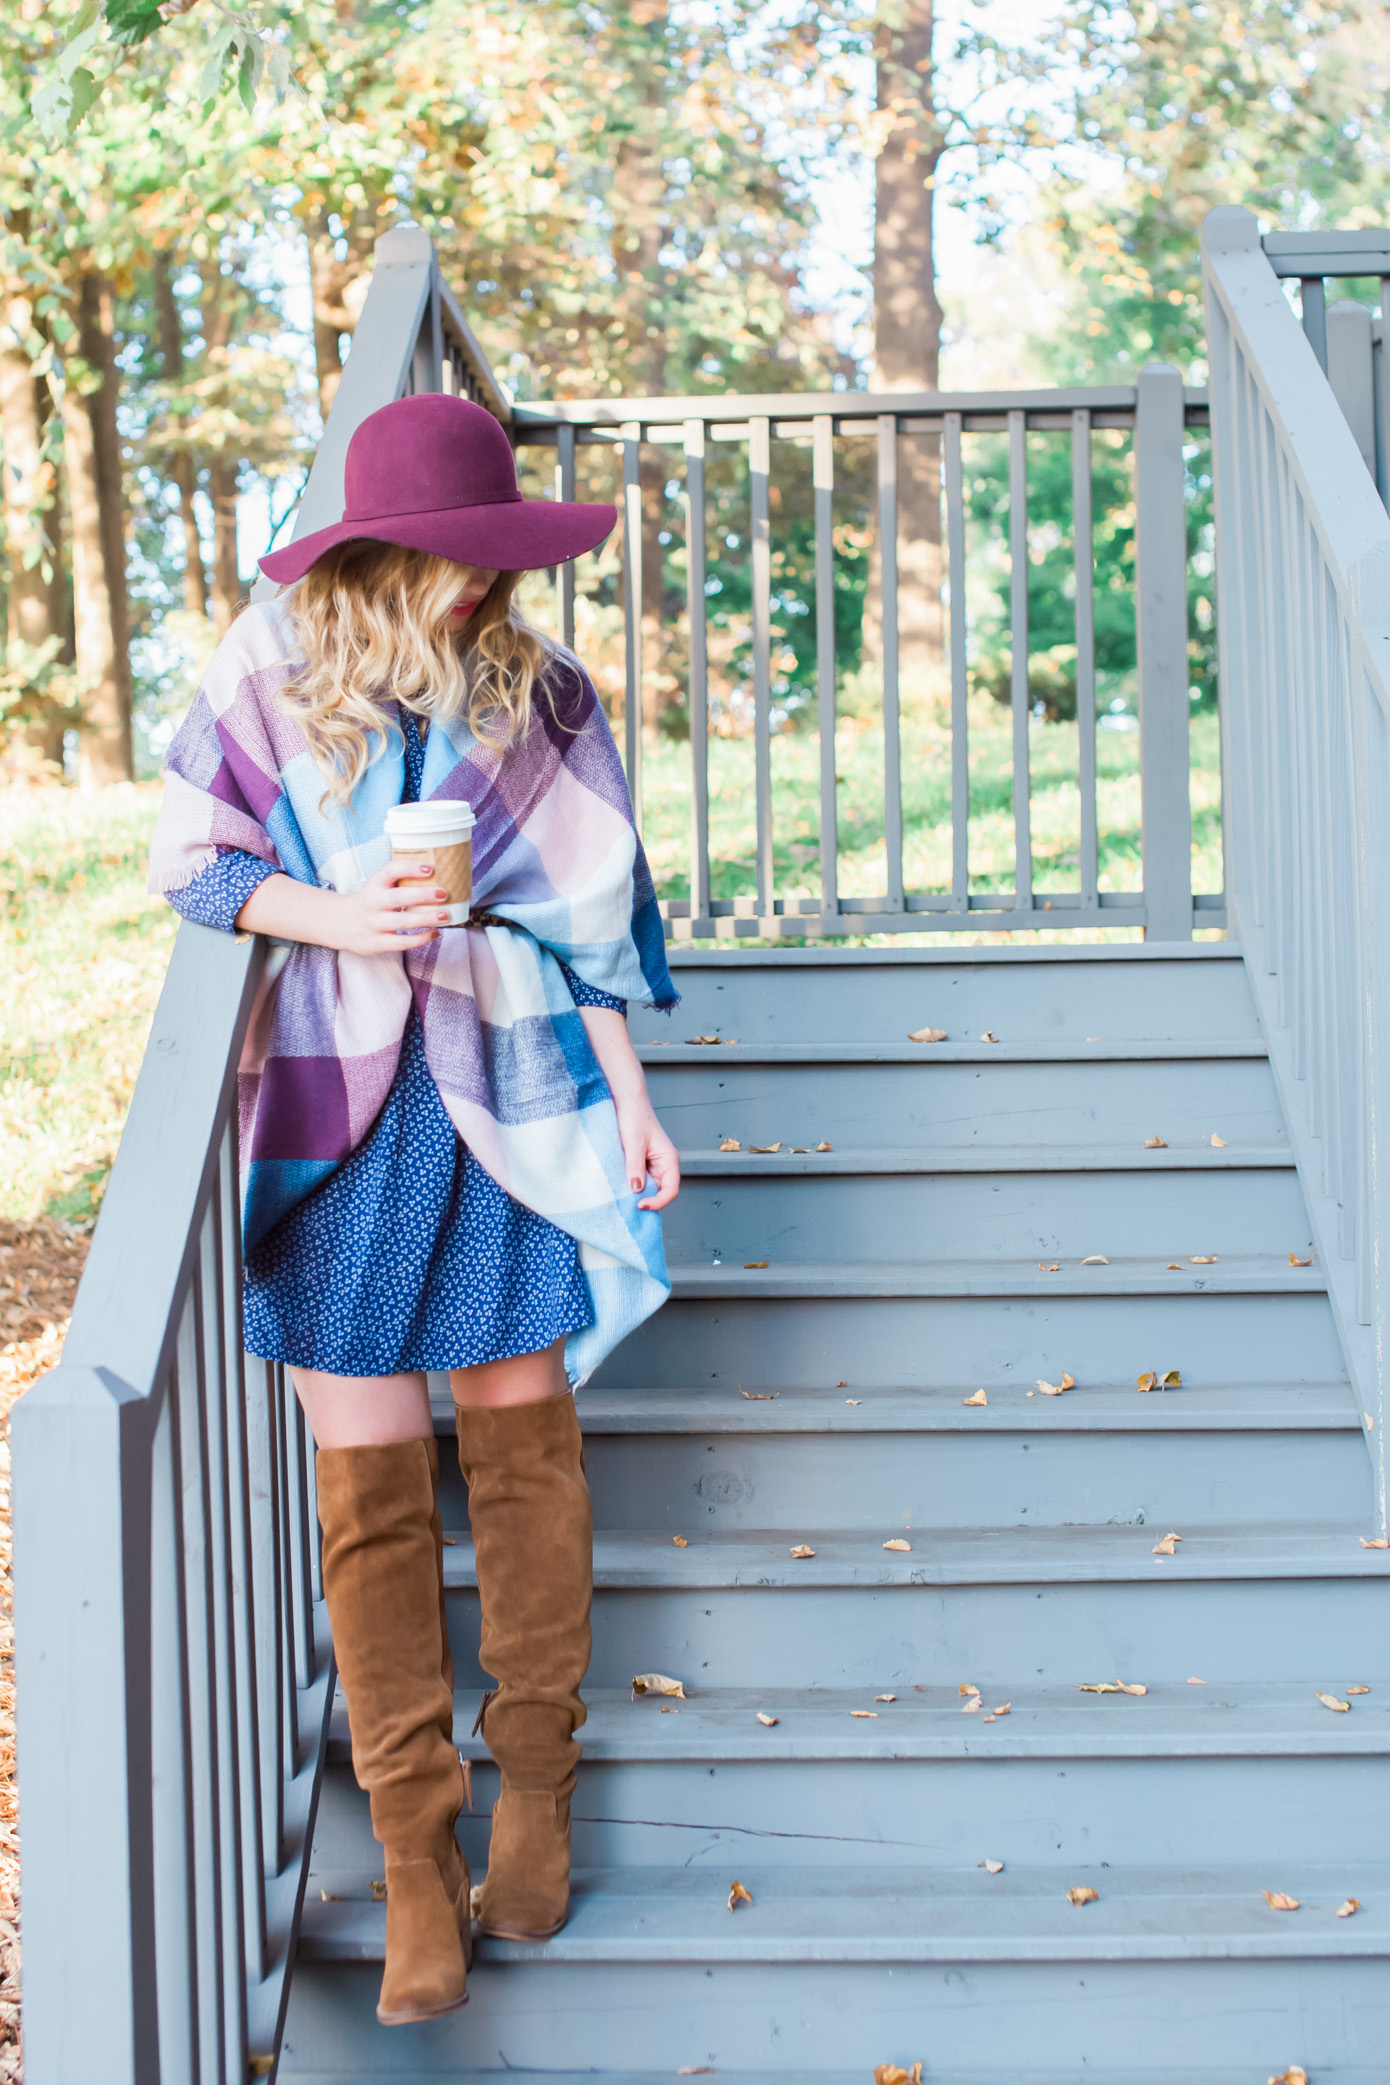 Fall Outfit Ideas | Fall Looks to Recreate | Louella Reese Life & Style Blog